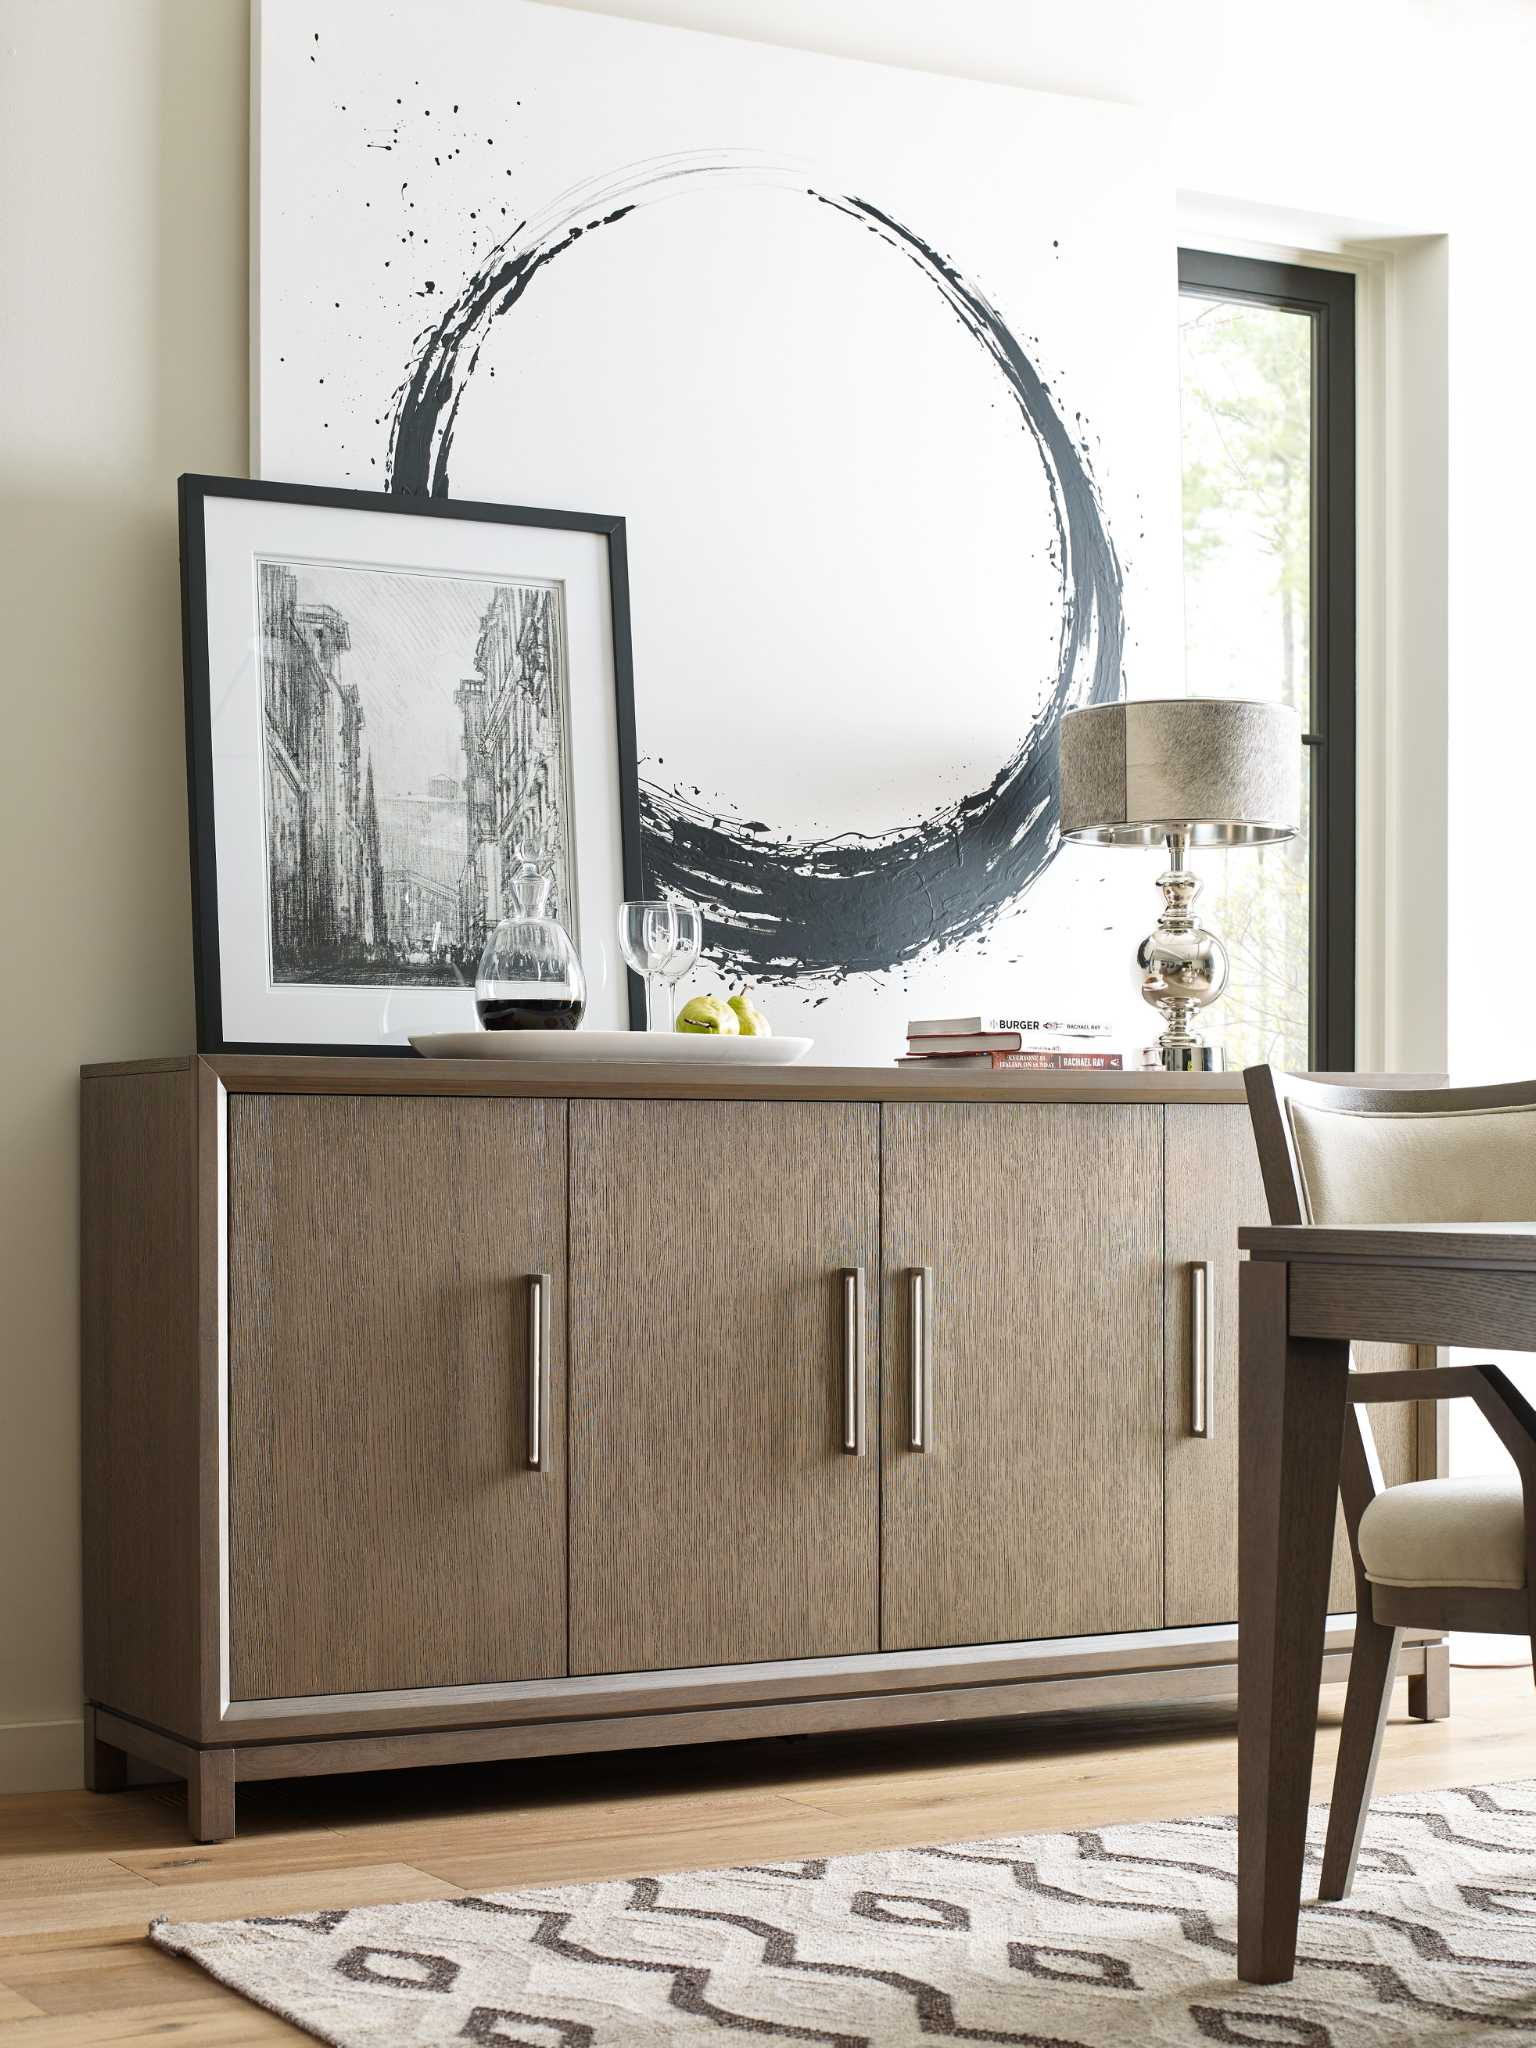 As with her food rachael ray delivers a versatile for Rachael ray furniture collection